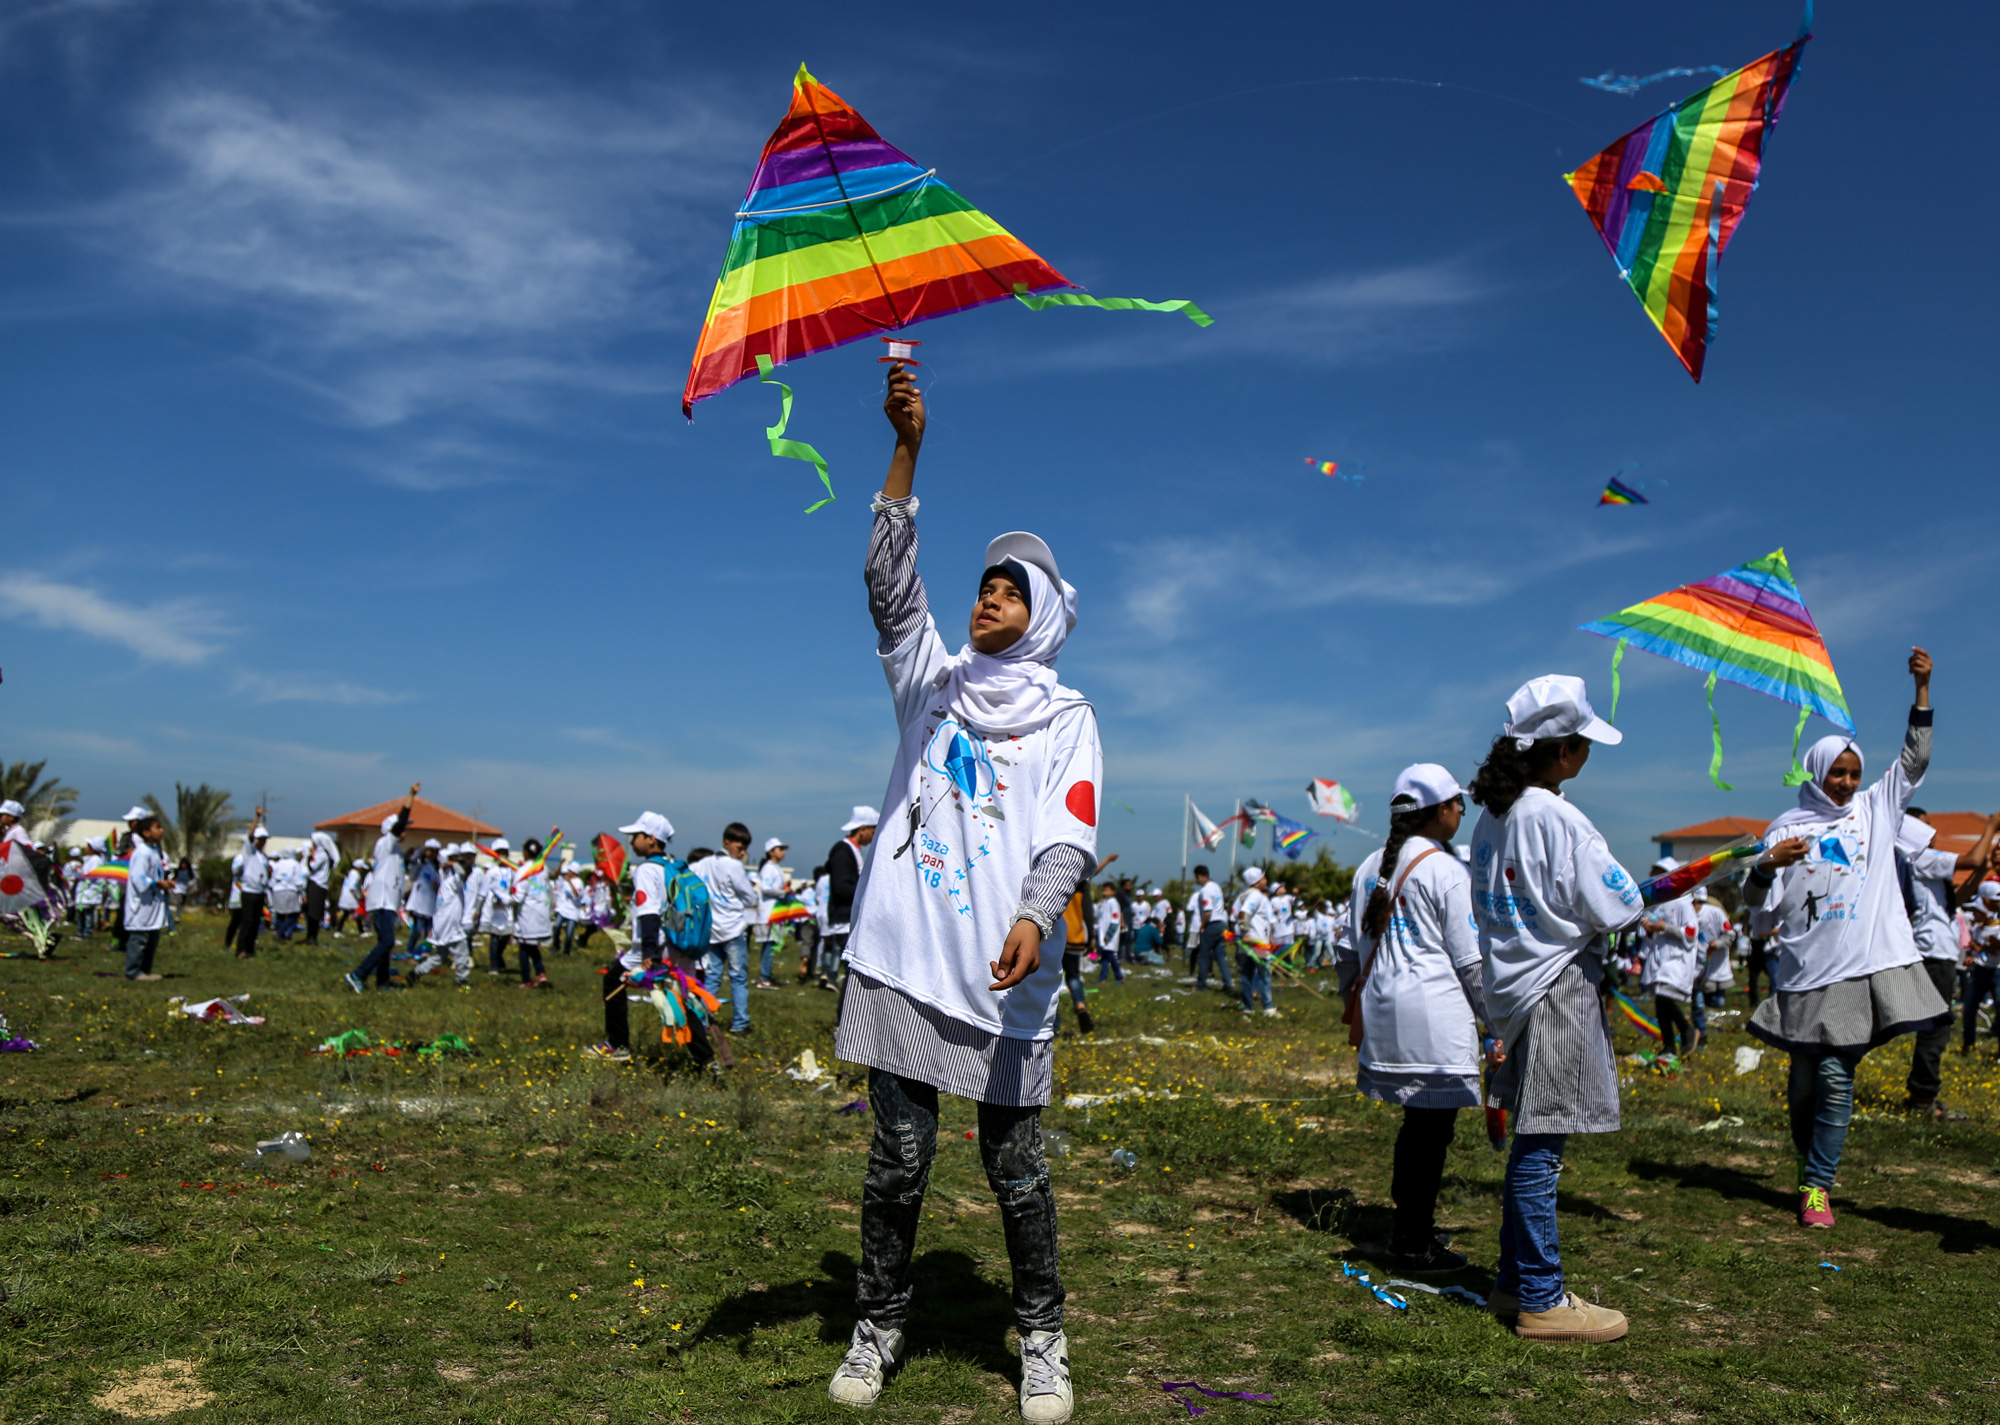 UNRWA Students Fly Kites in memory of Japanese Earthquake